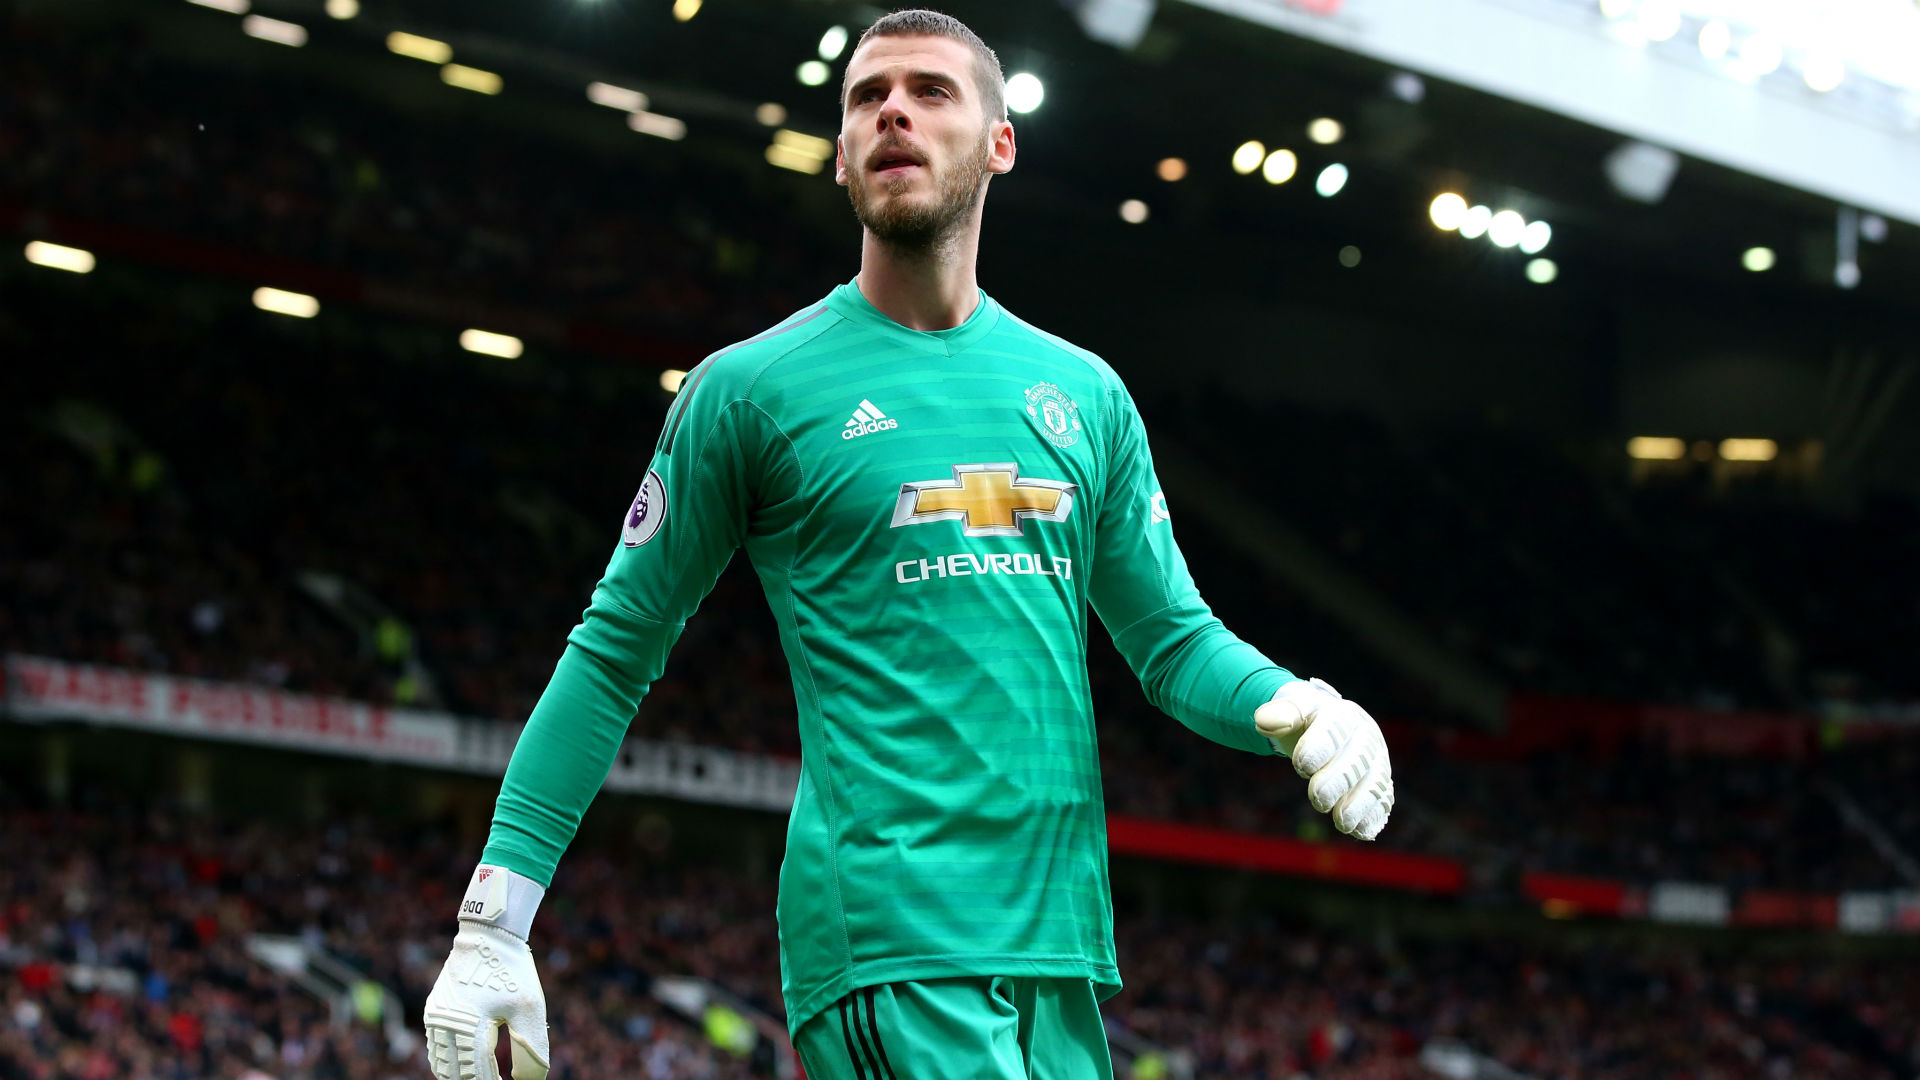 Solskjaer on De Gea contract talks: Hopefully we can get it done